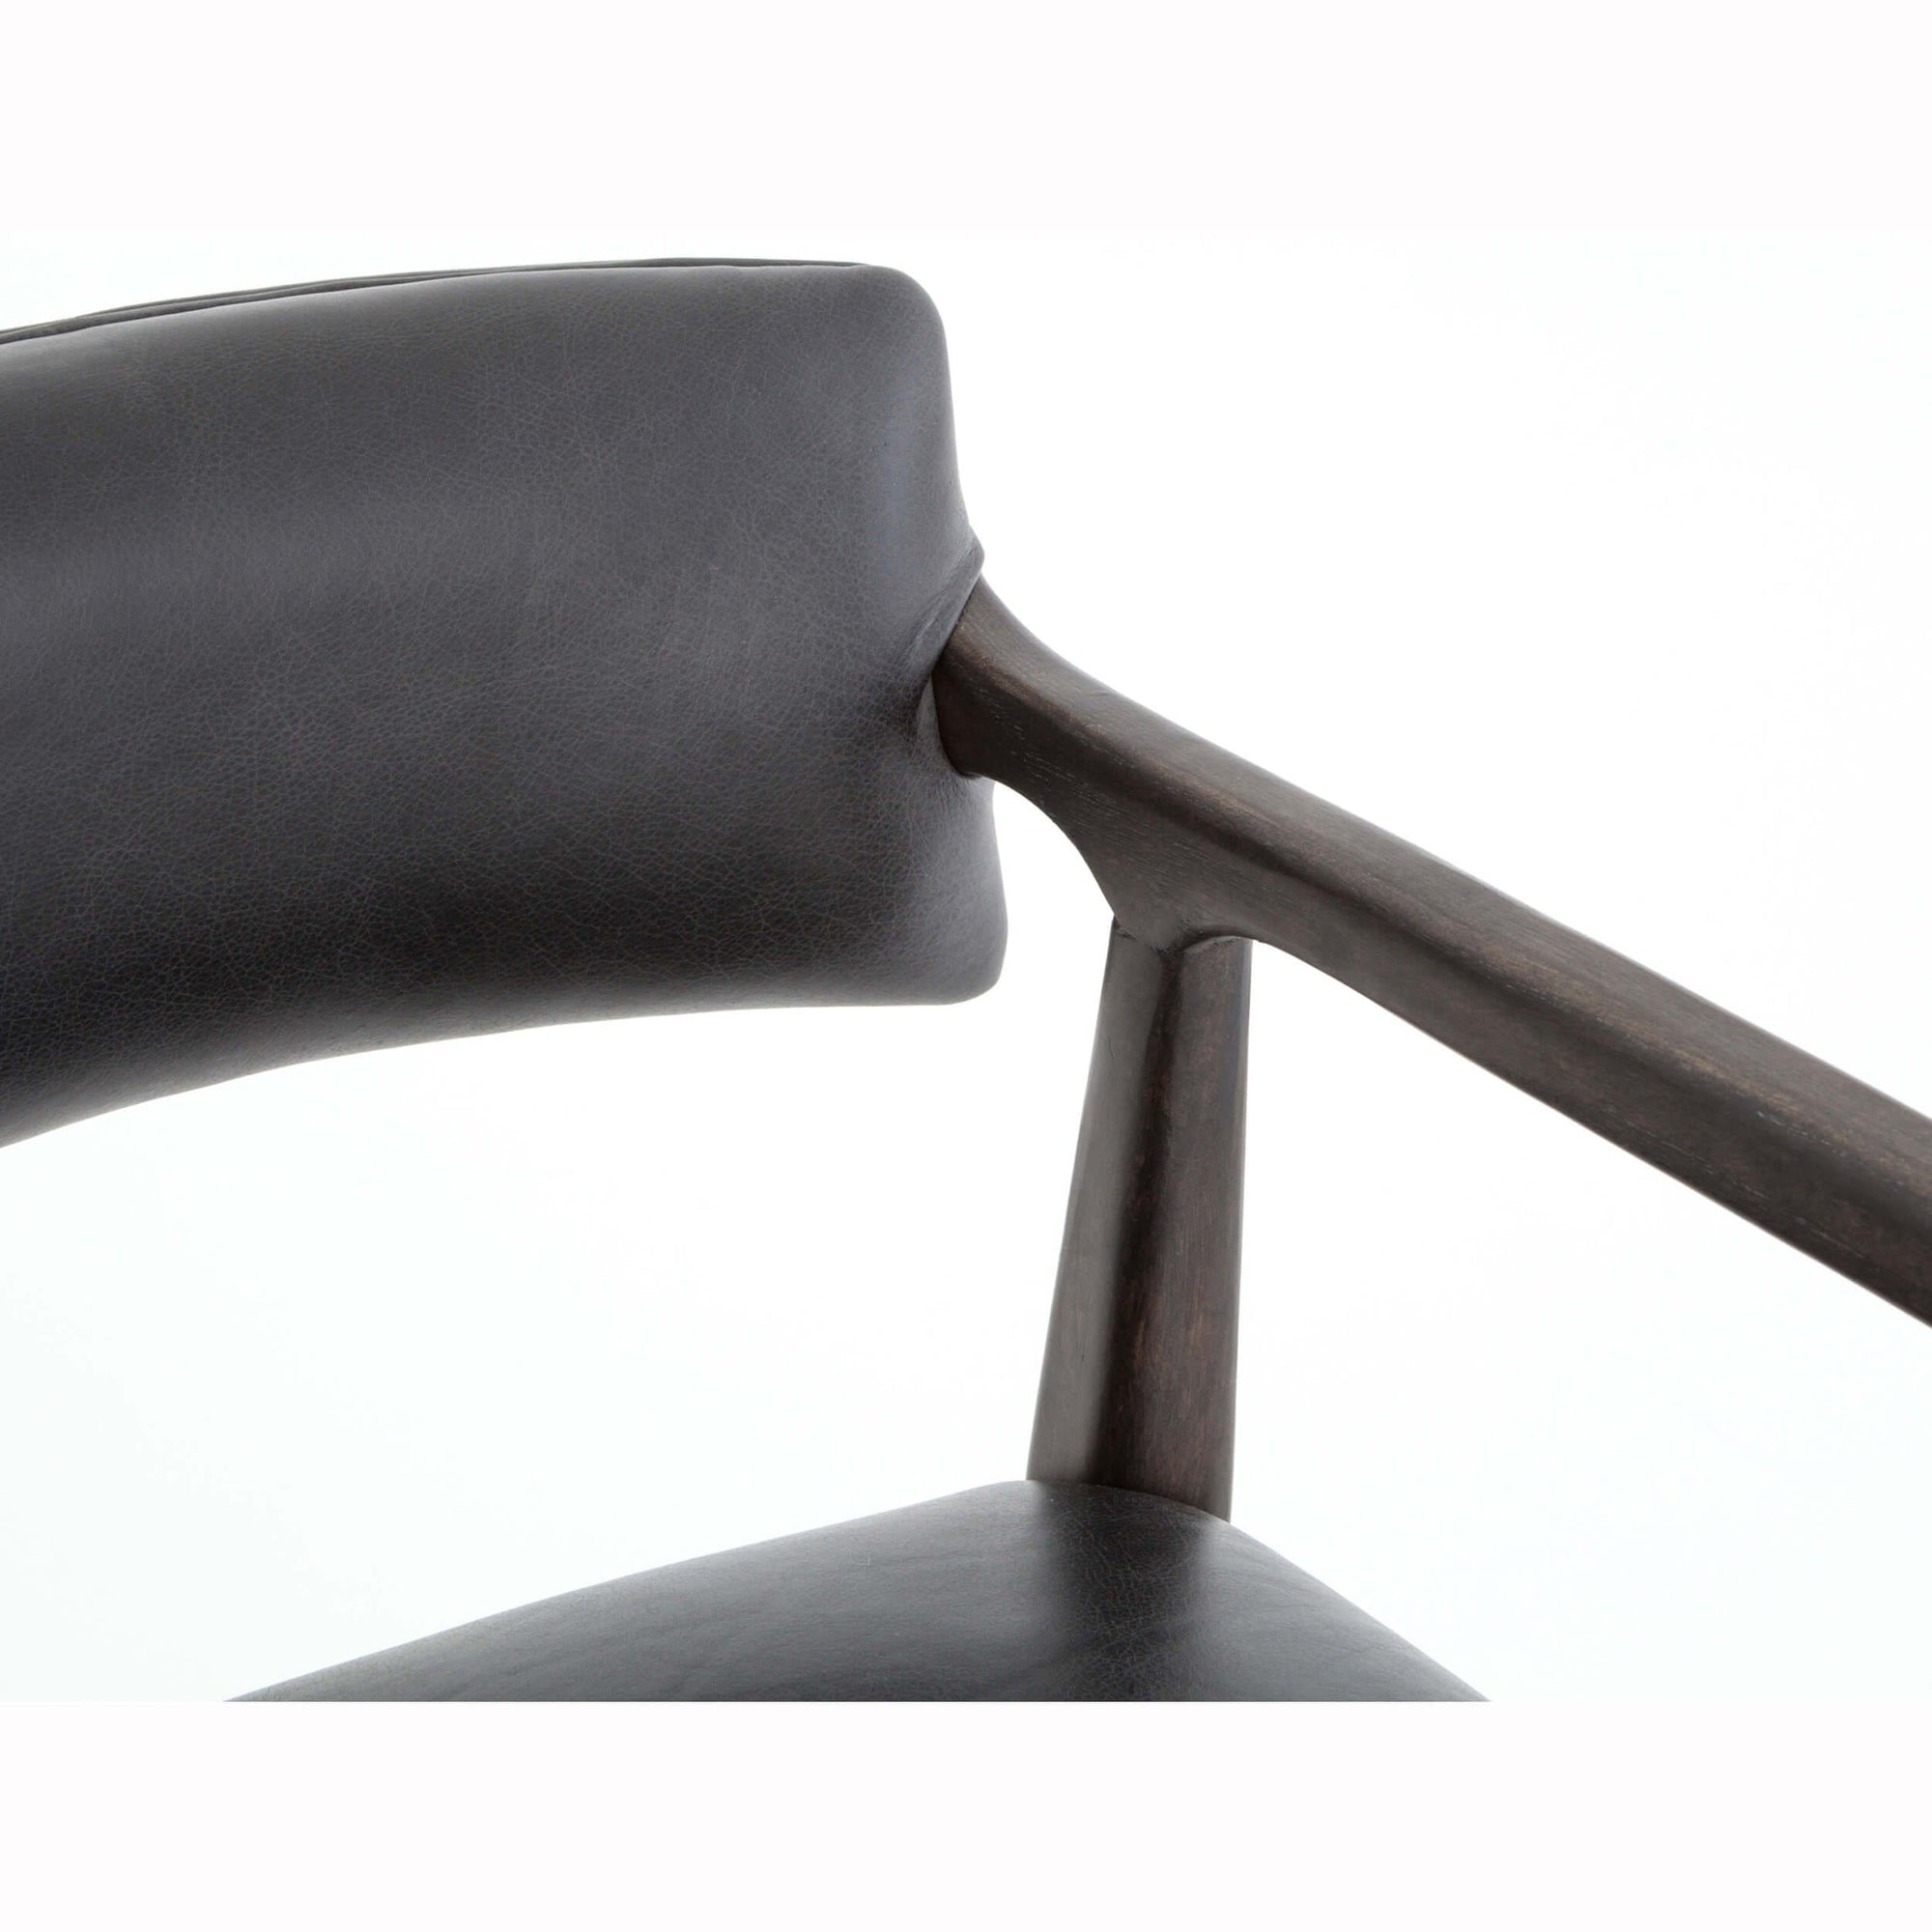 Tremendous Tyler Leather Counter Stool Chaps Ebony High Fashion Home Caraccident5 Cool Chair Designs And Ideas Caraccident5Info